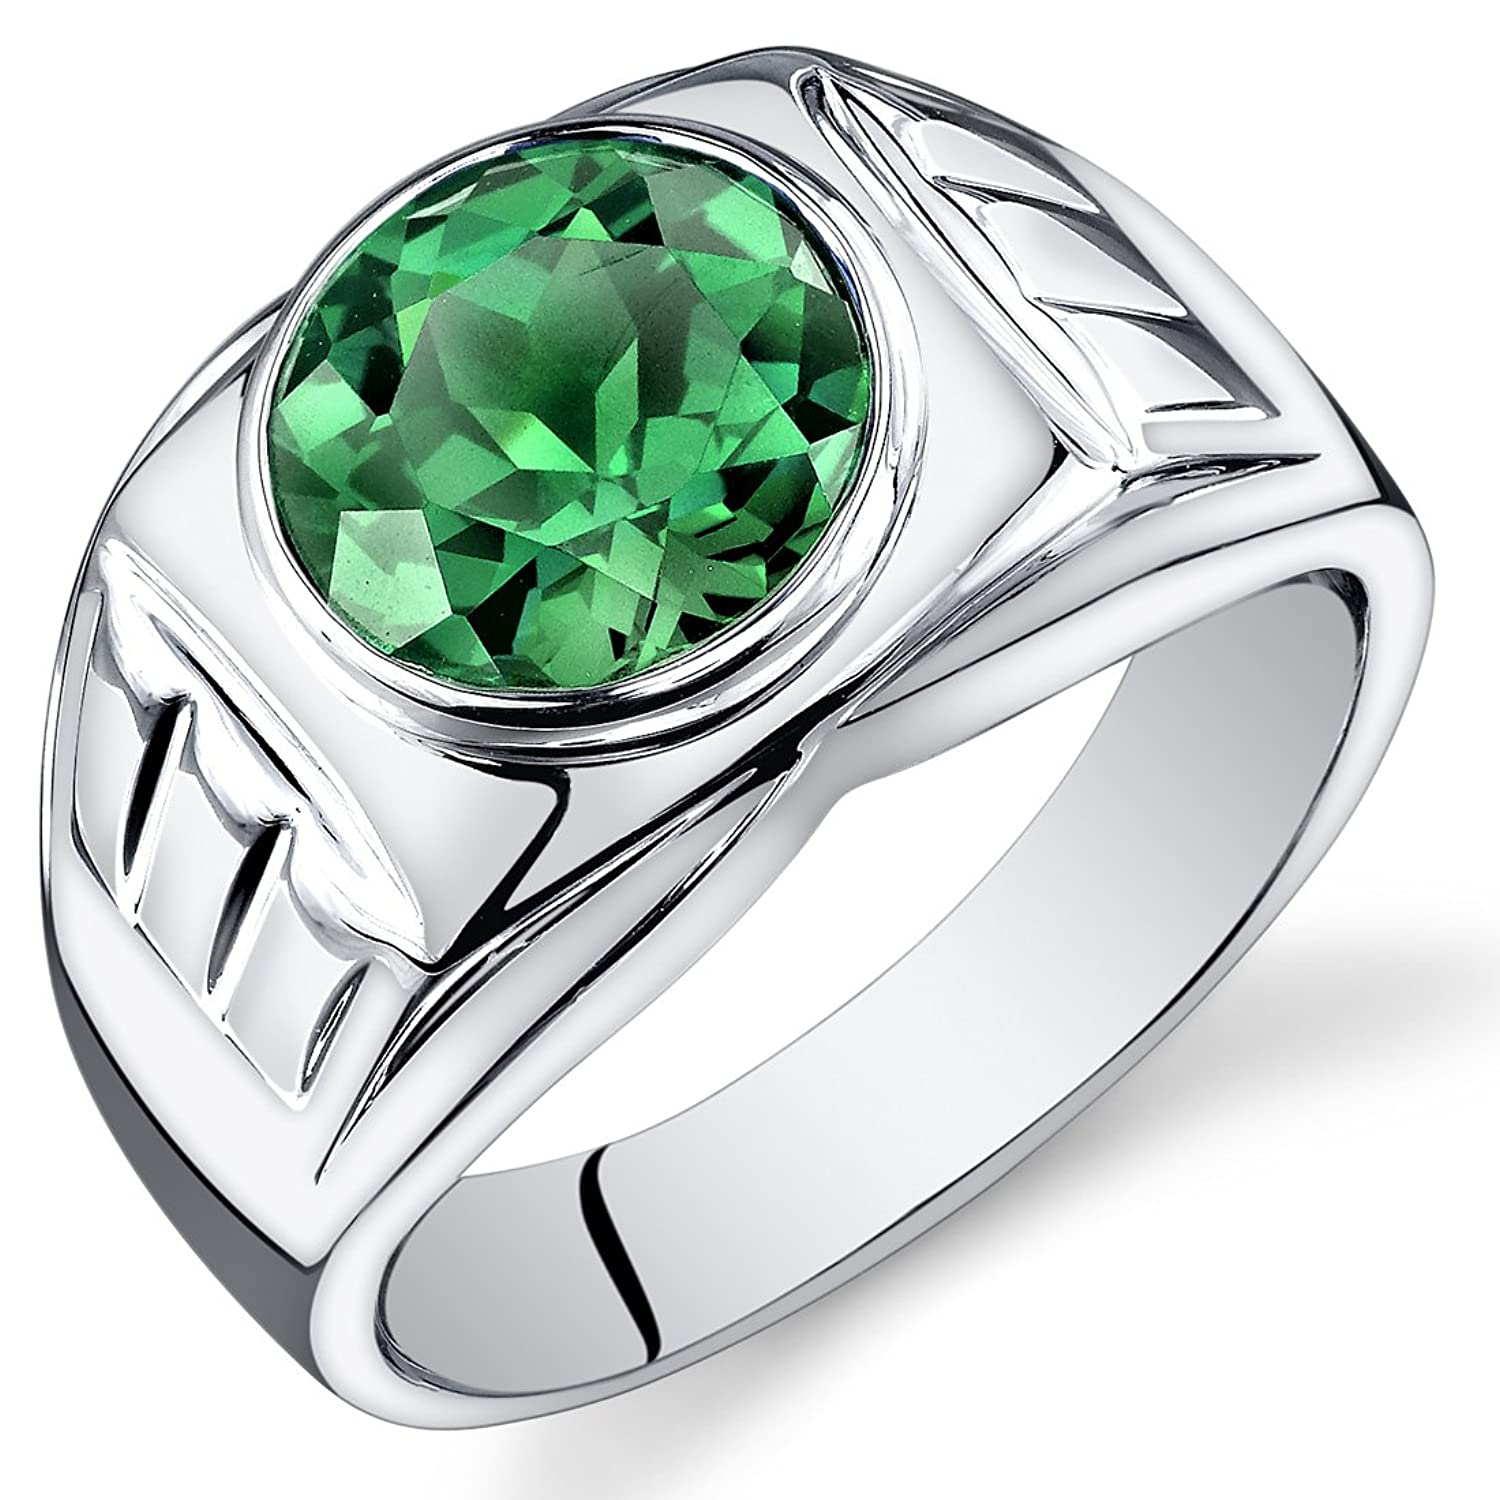 green stone rings square en color emerald ring edizione ultima